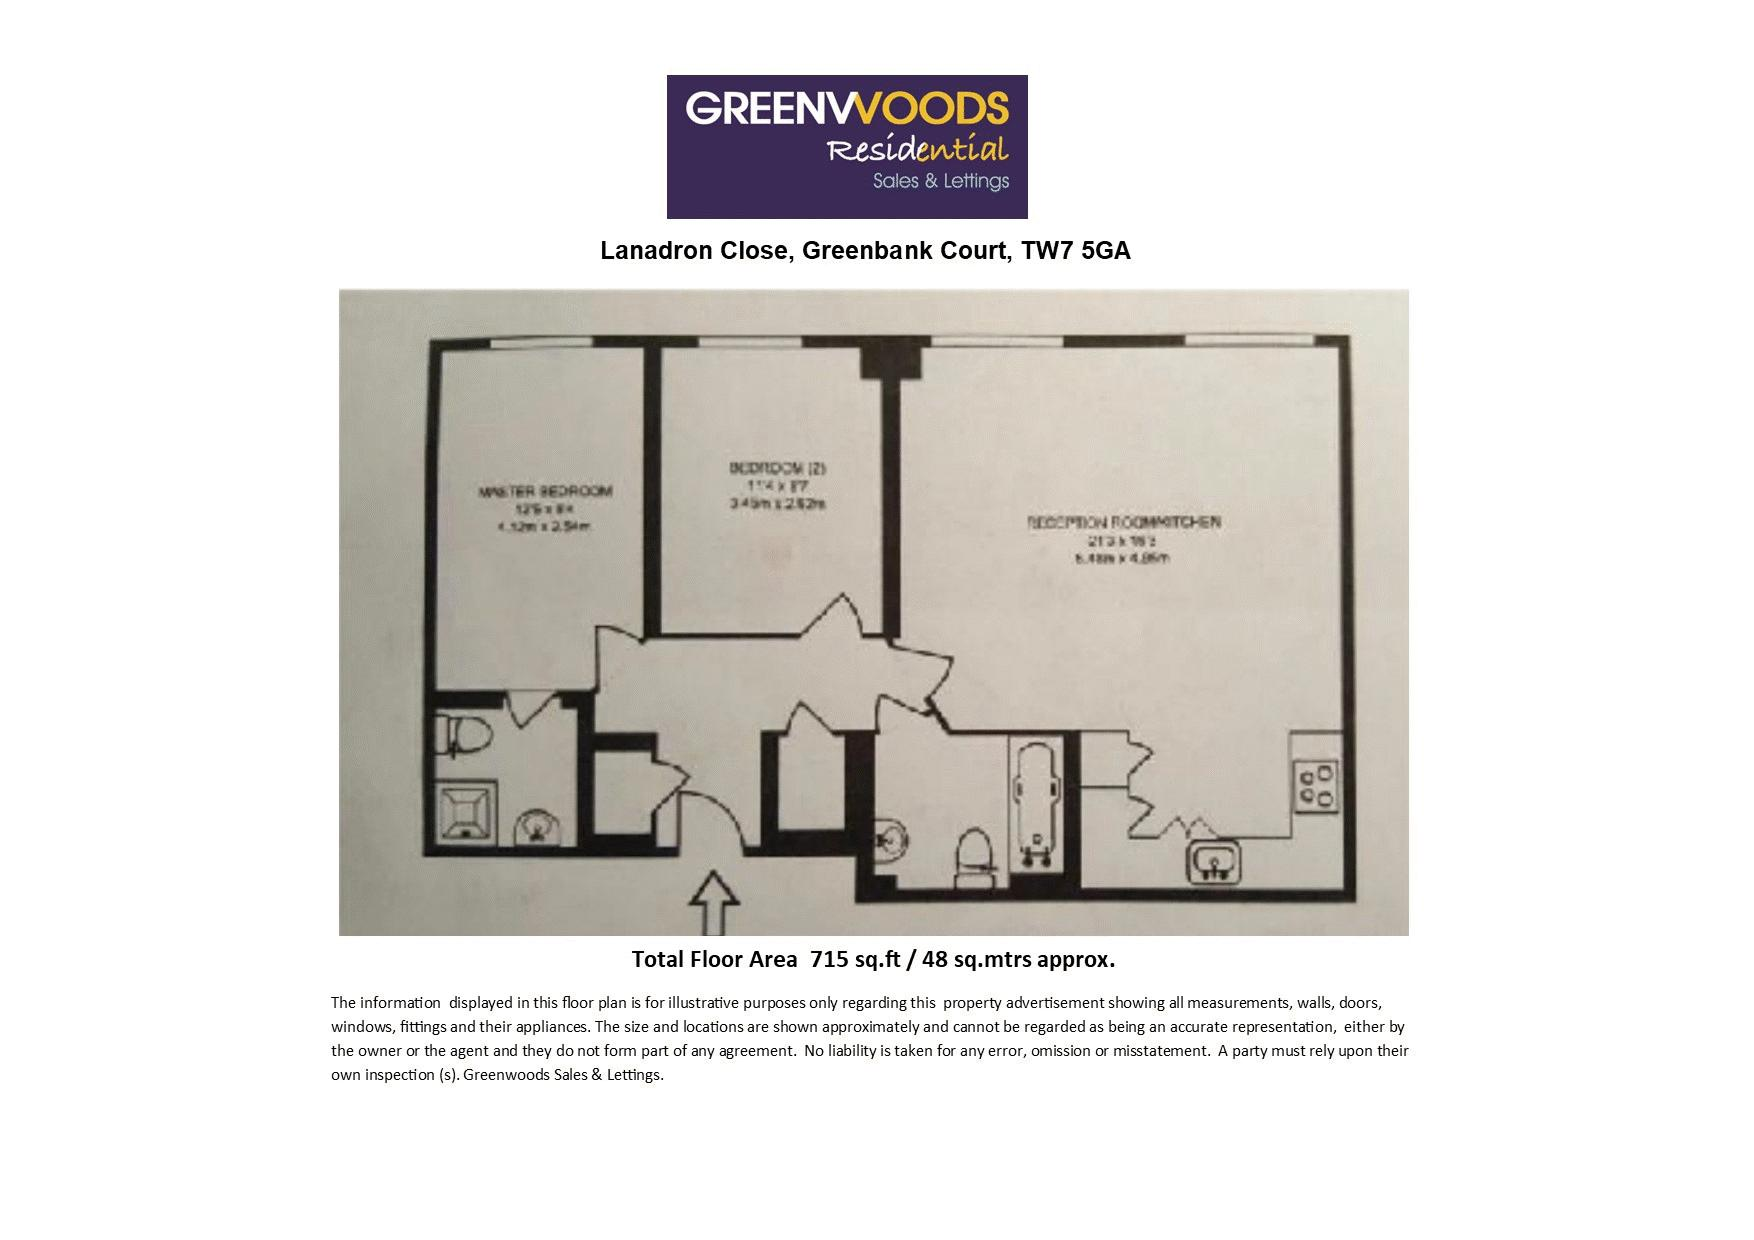 2 D Floorplan Greenbank - GRP